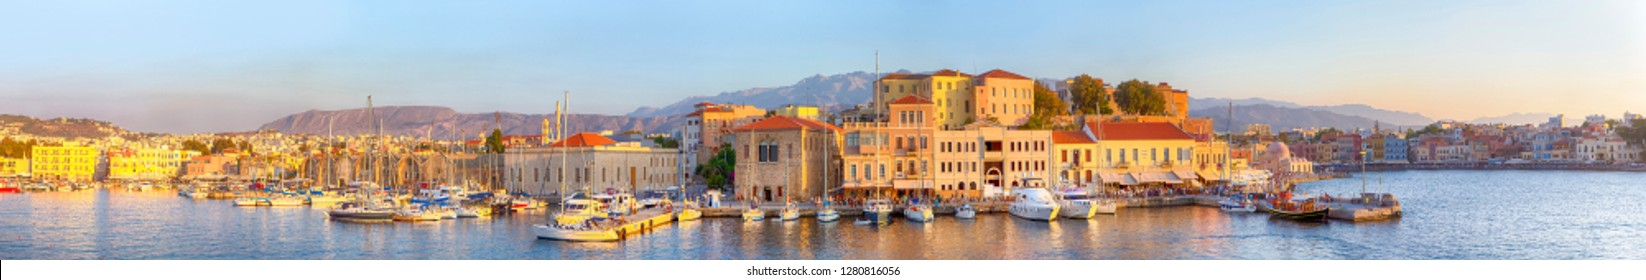 Amazing and Picturesque Old Center of Chania  Cityscape with Ancient Venetian Port in Crete, Greece.Panoramic Image composition